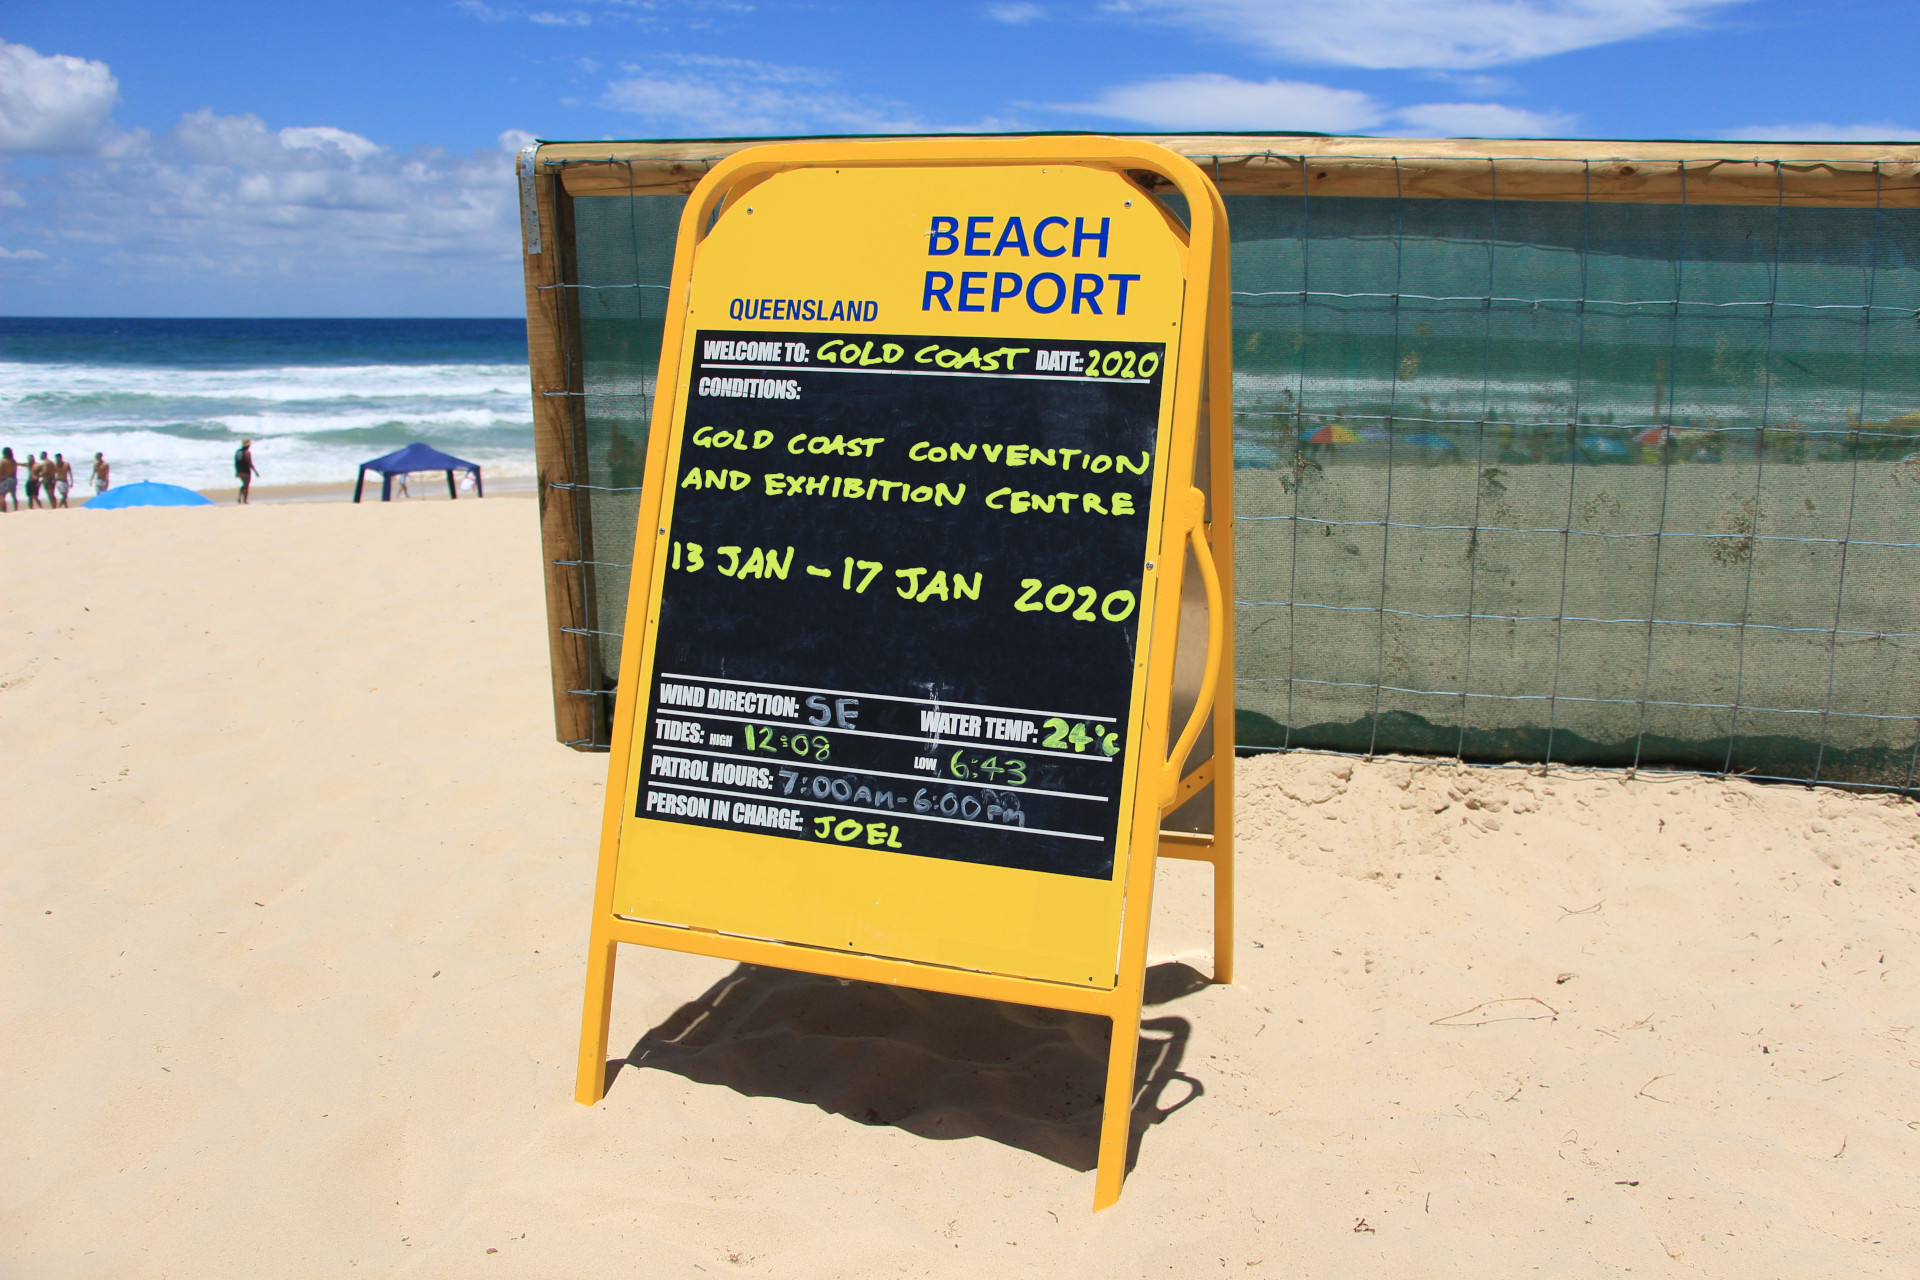 linux.conf.au 2020 at the Gold Coast